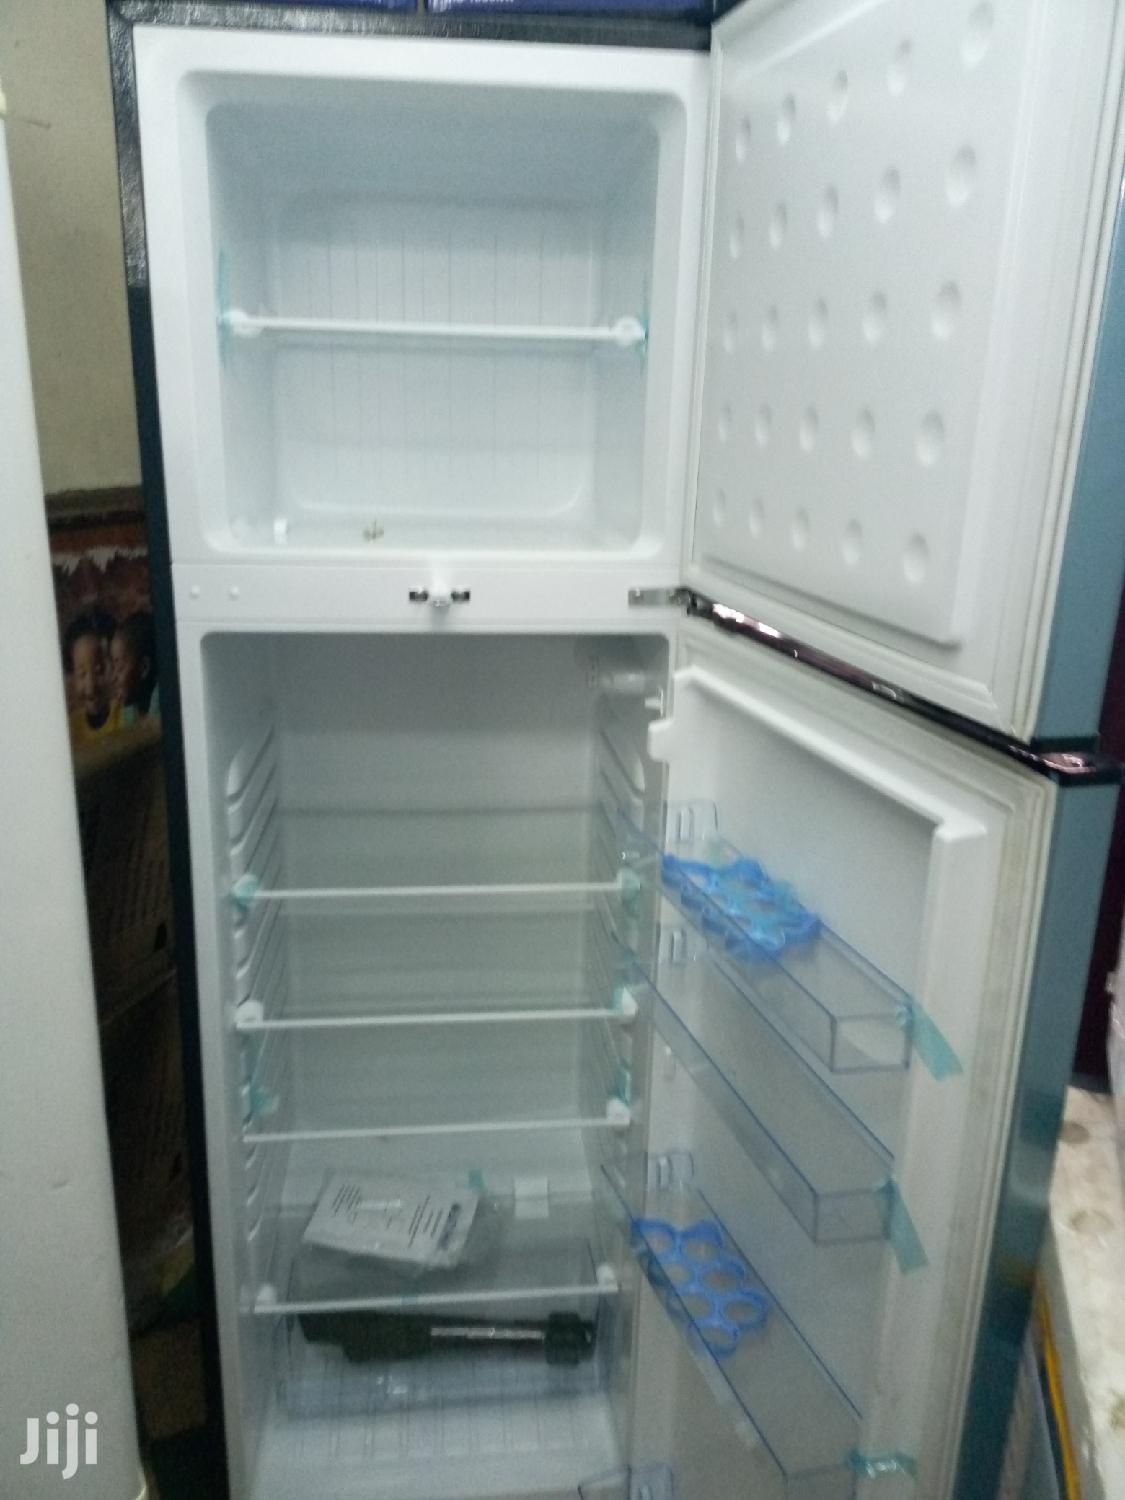 No Frost Fridge | Kitchen Appliances for sale in Nairobi Central, Nairobi, Kenya